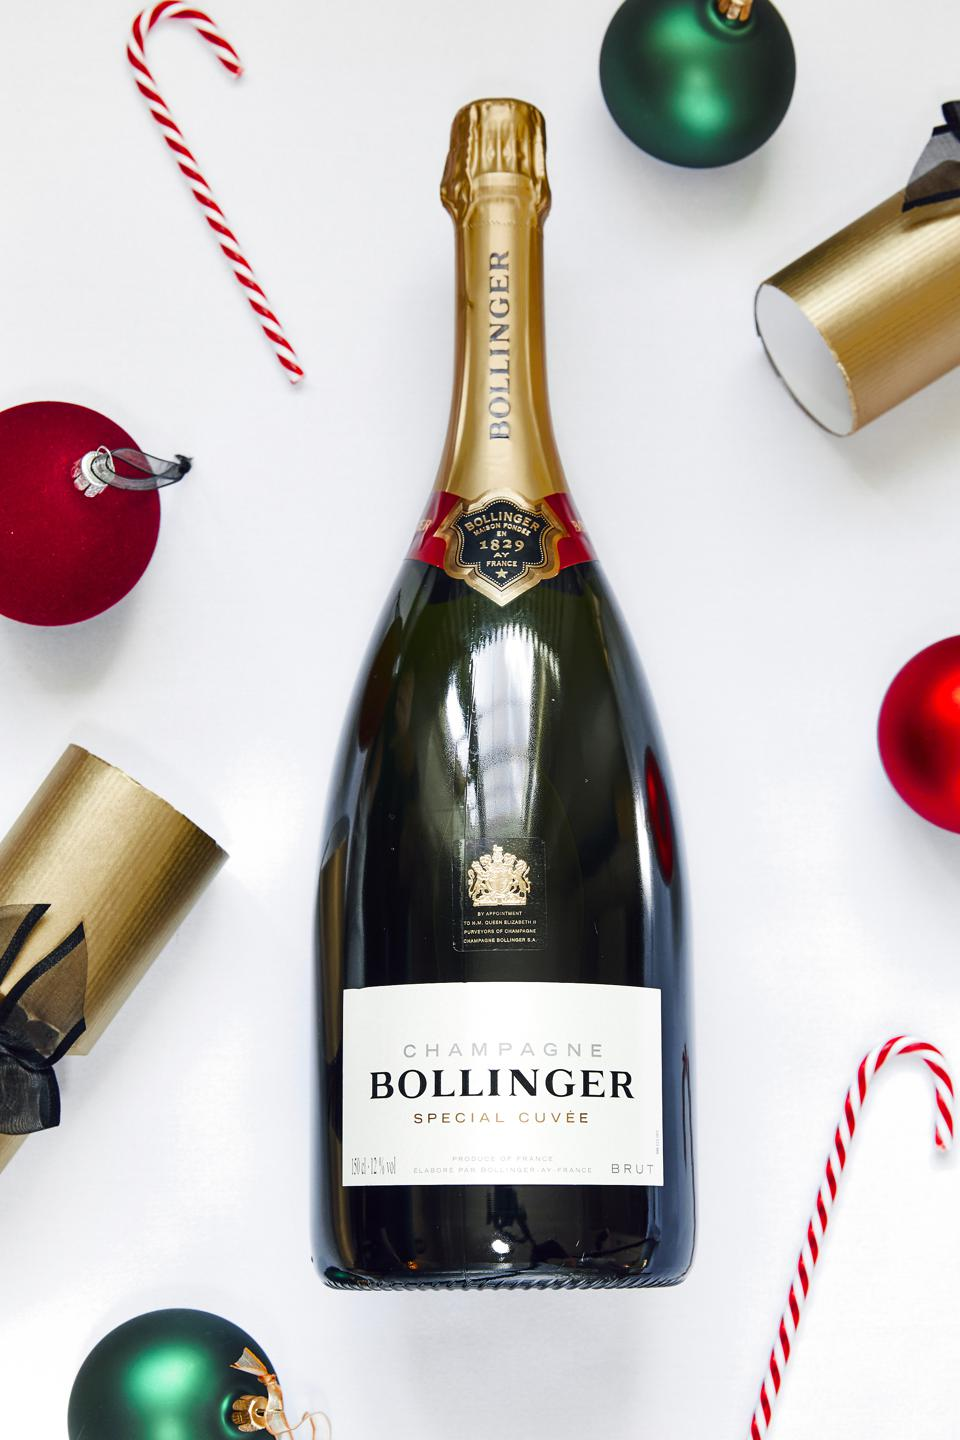 Bollinger Champagne from the Magnum Company